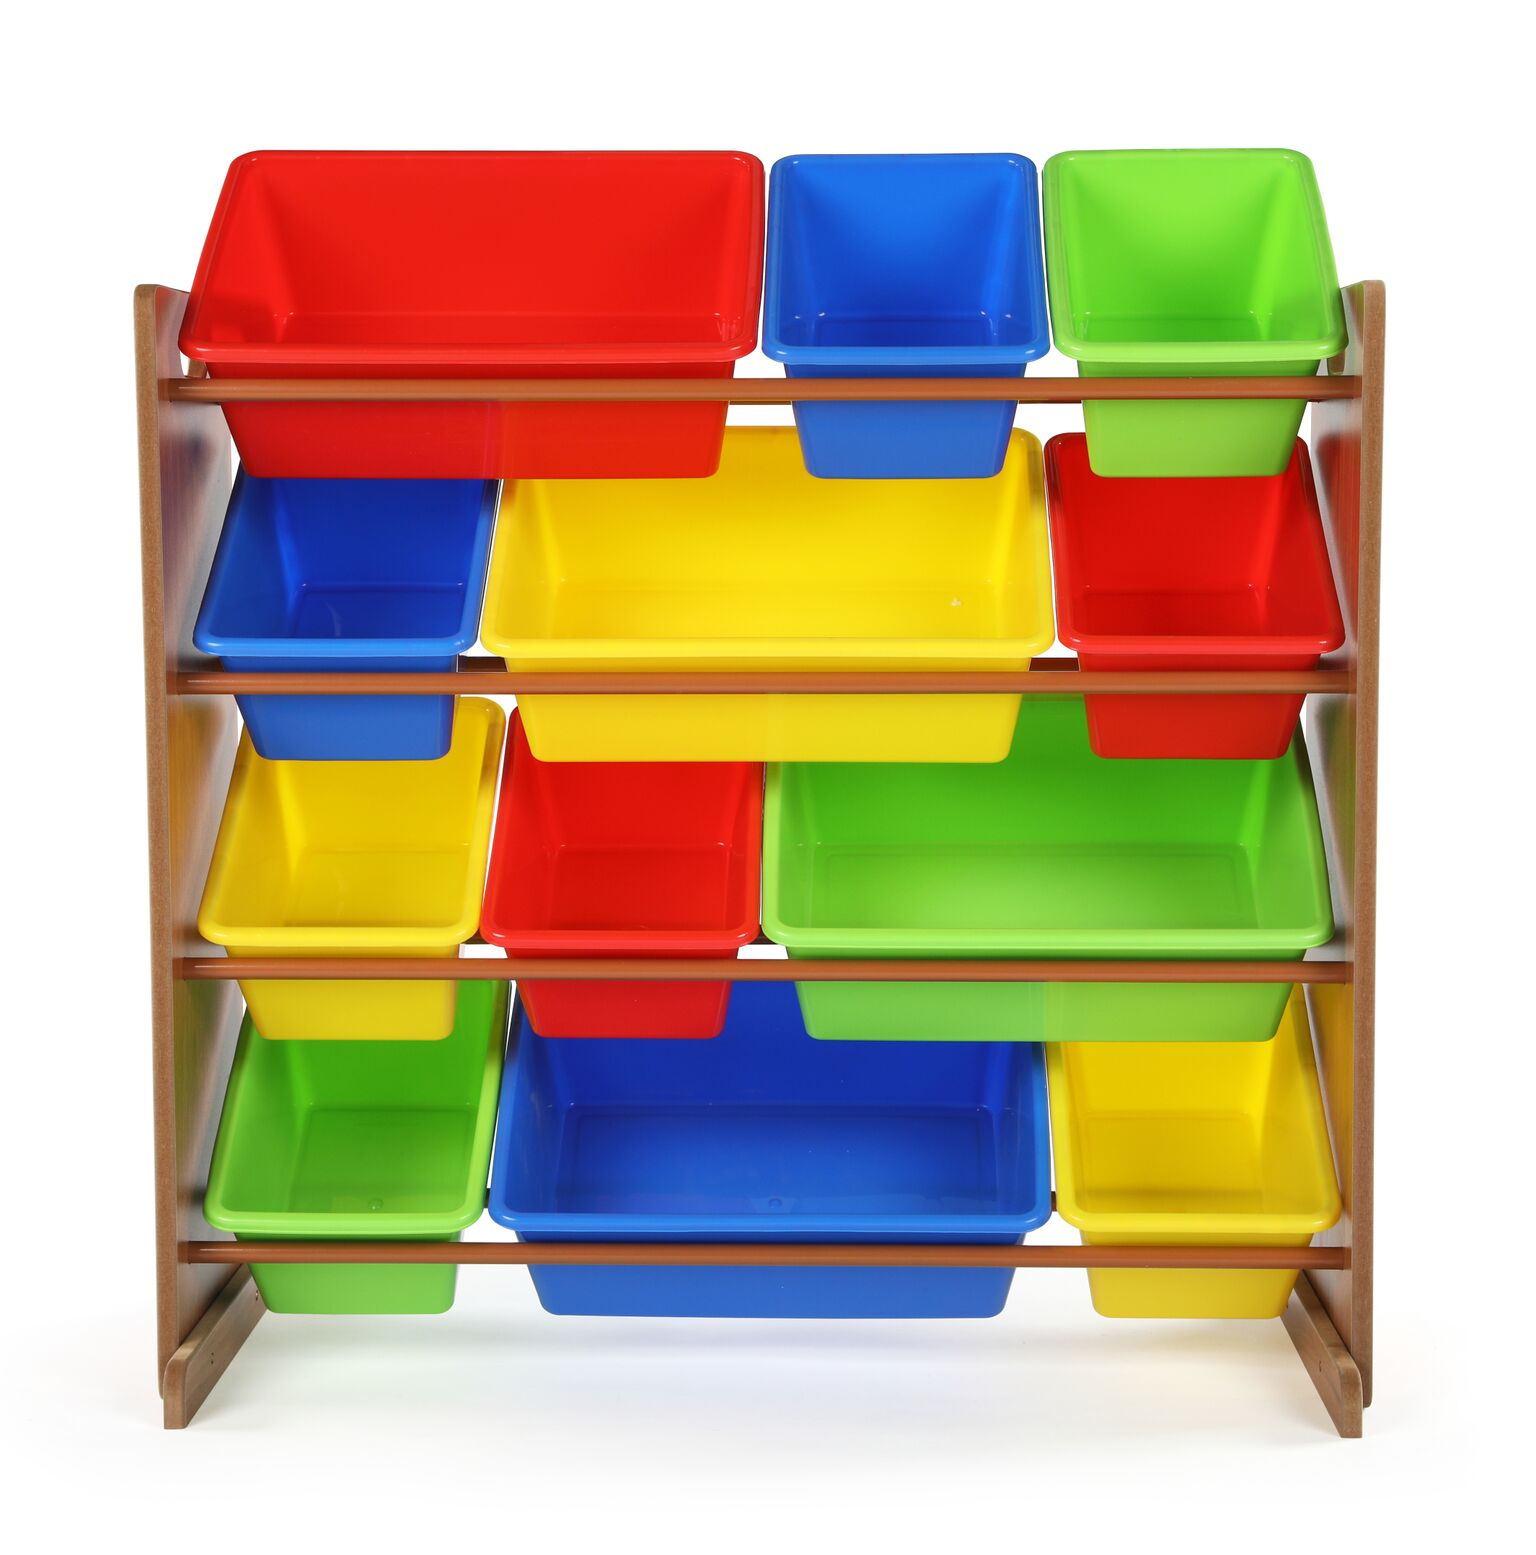 Highlight Collection Kids Toy Storage Organizer with 12 Plastic Bins, Dark Pine & Primary